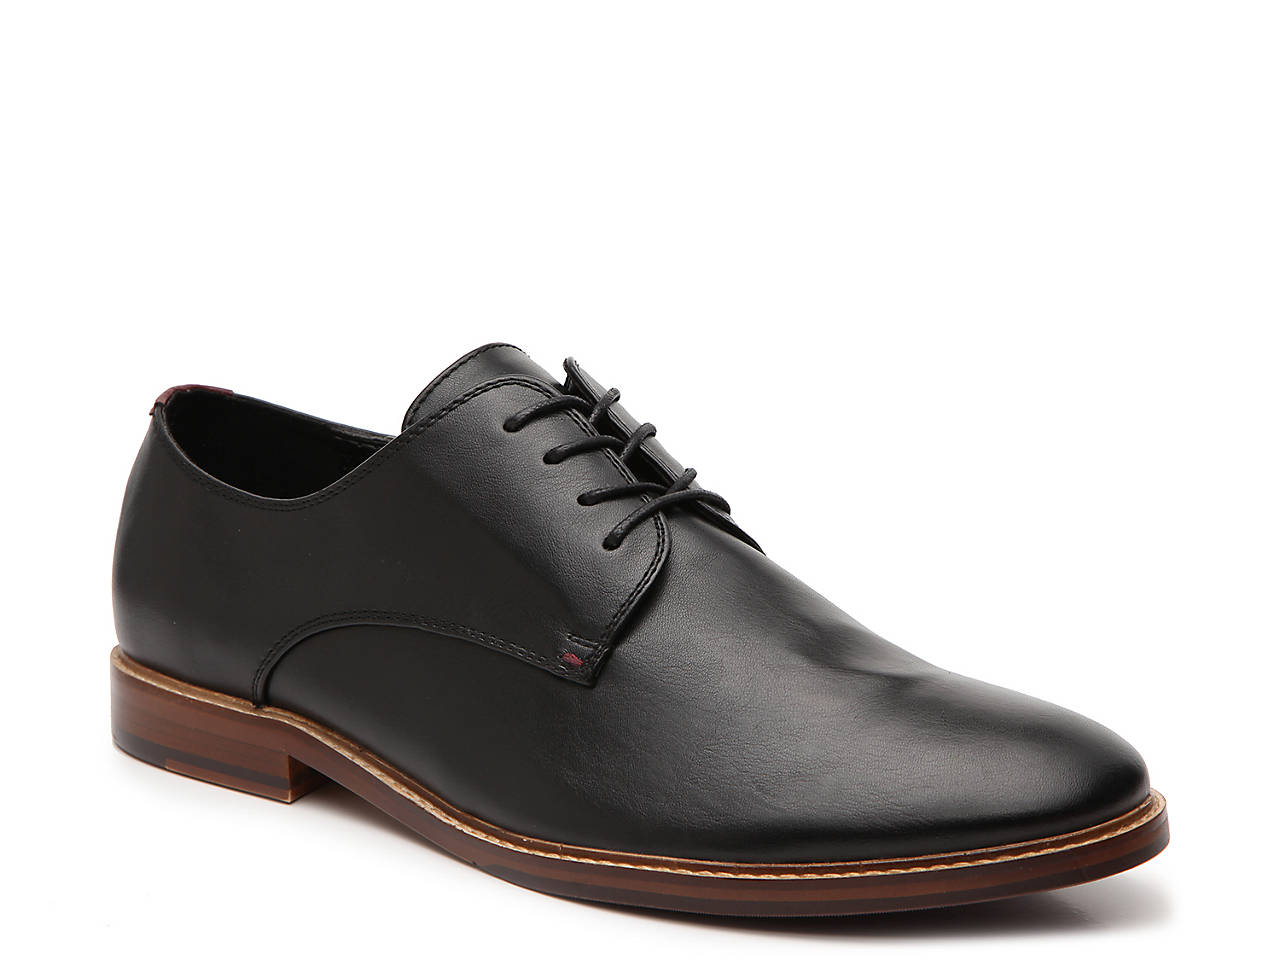 online store eac10 e7a52 Call It Spring Erorenna Oxford Men s Shoes   DSW